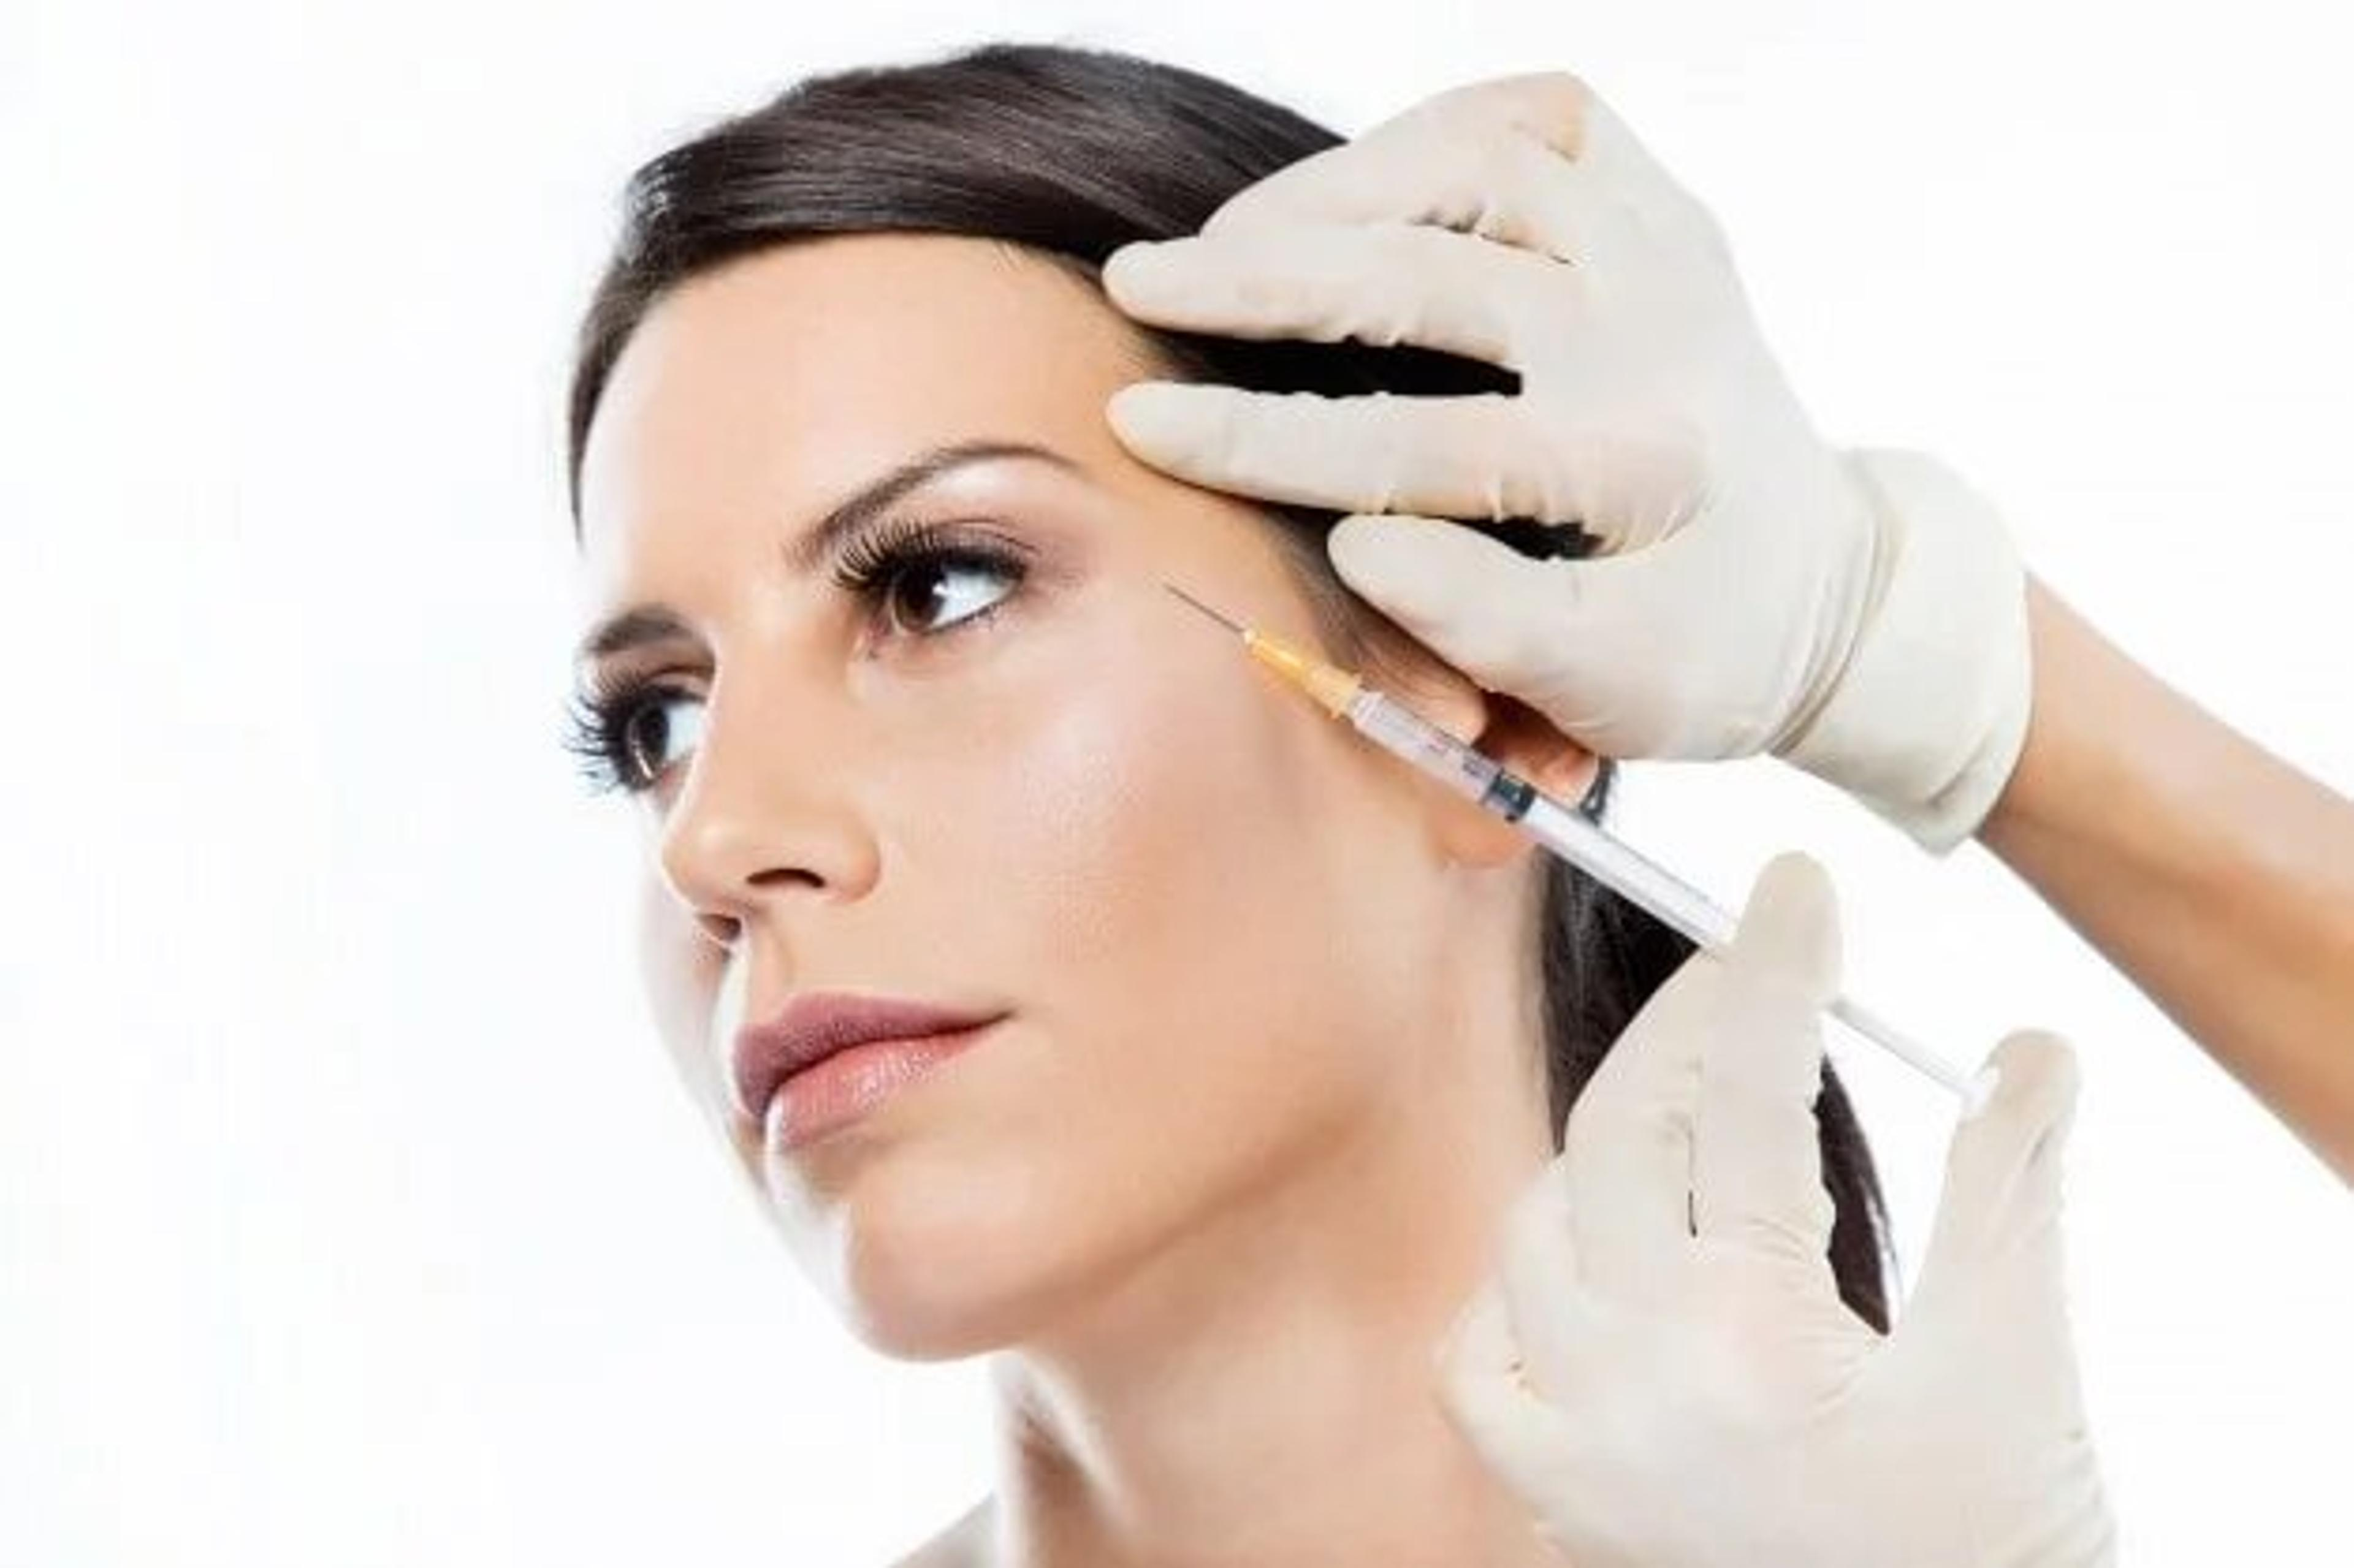 Patient receiving injection near the eyes